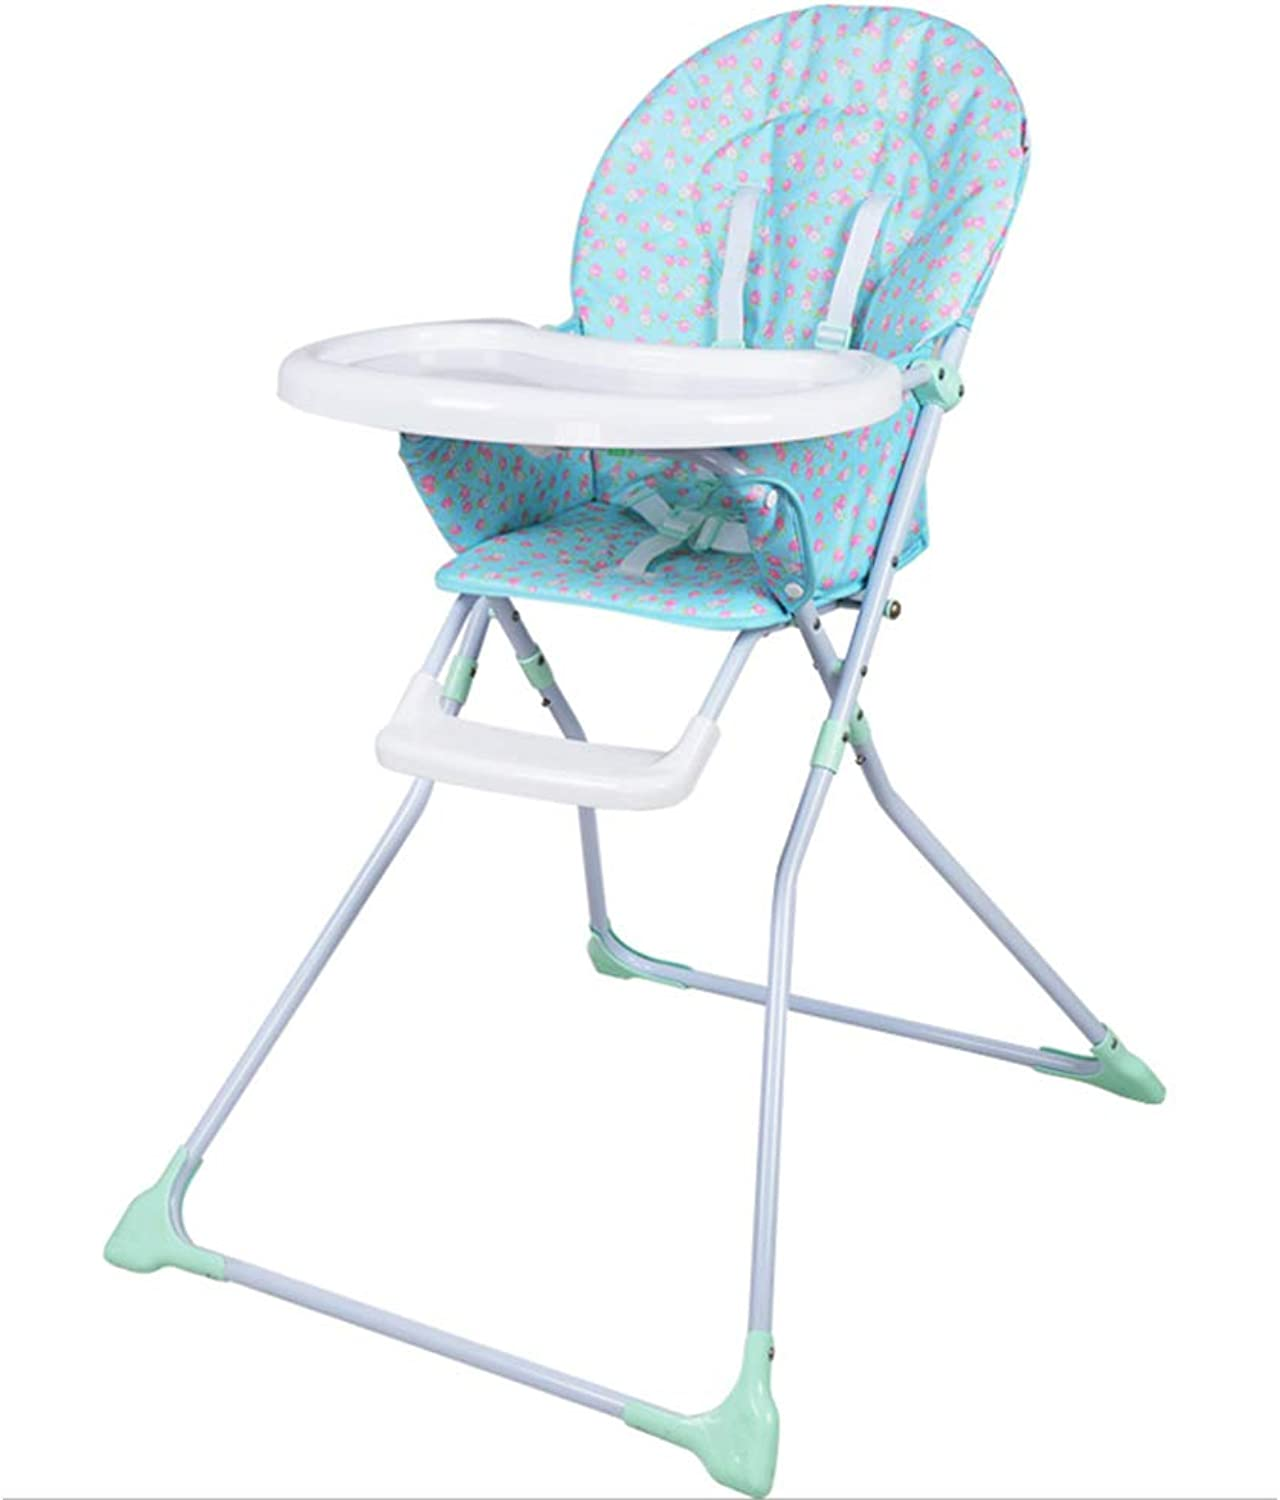 Baby Highchairs Dining Table Chairs Foldable Portable Plastic Washable Eating Chair ZHANGQIANG (color   Cartoon Cloth, Size   Large)